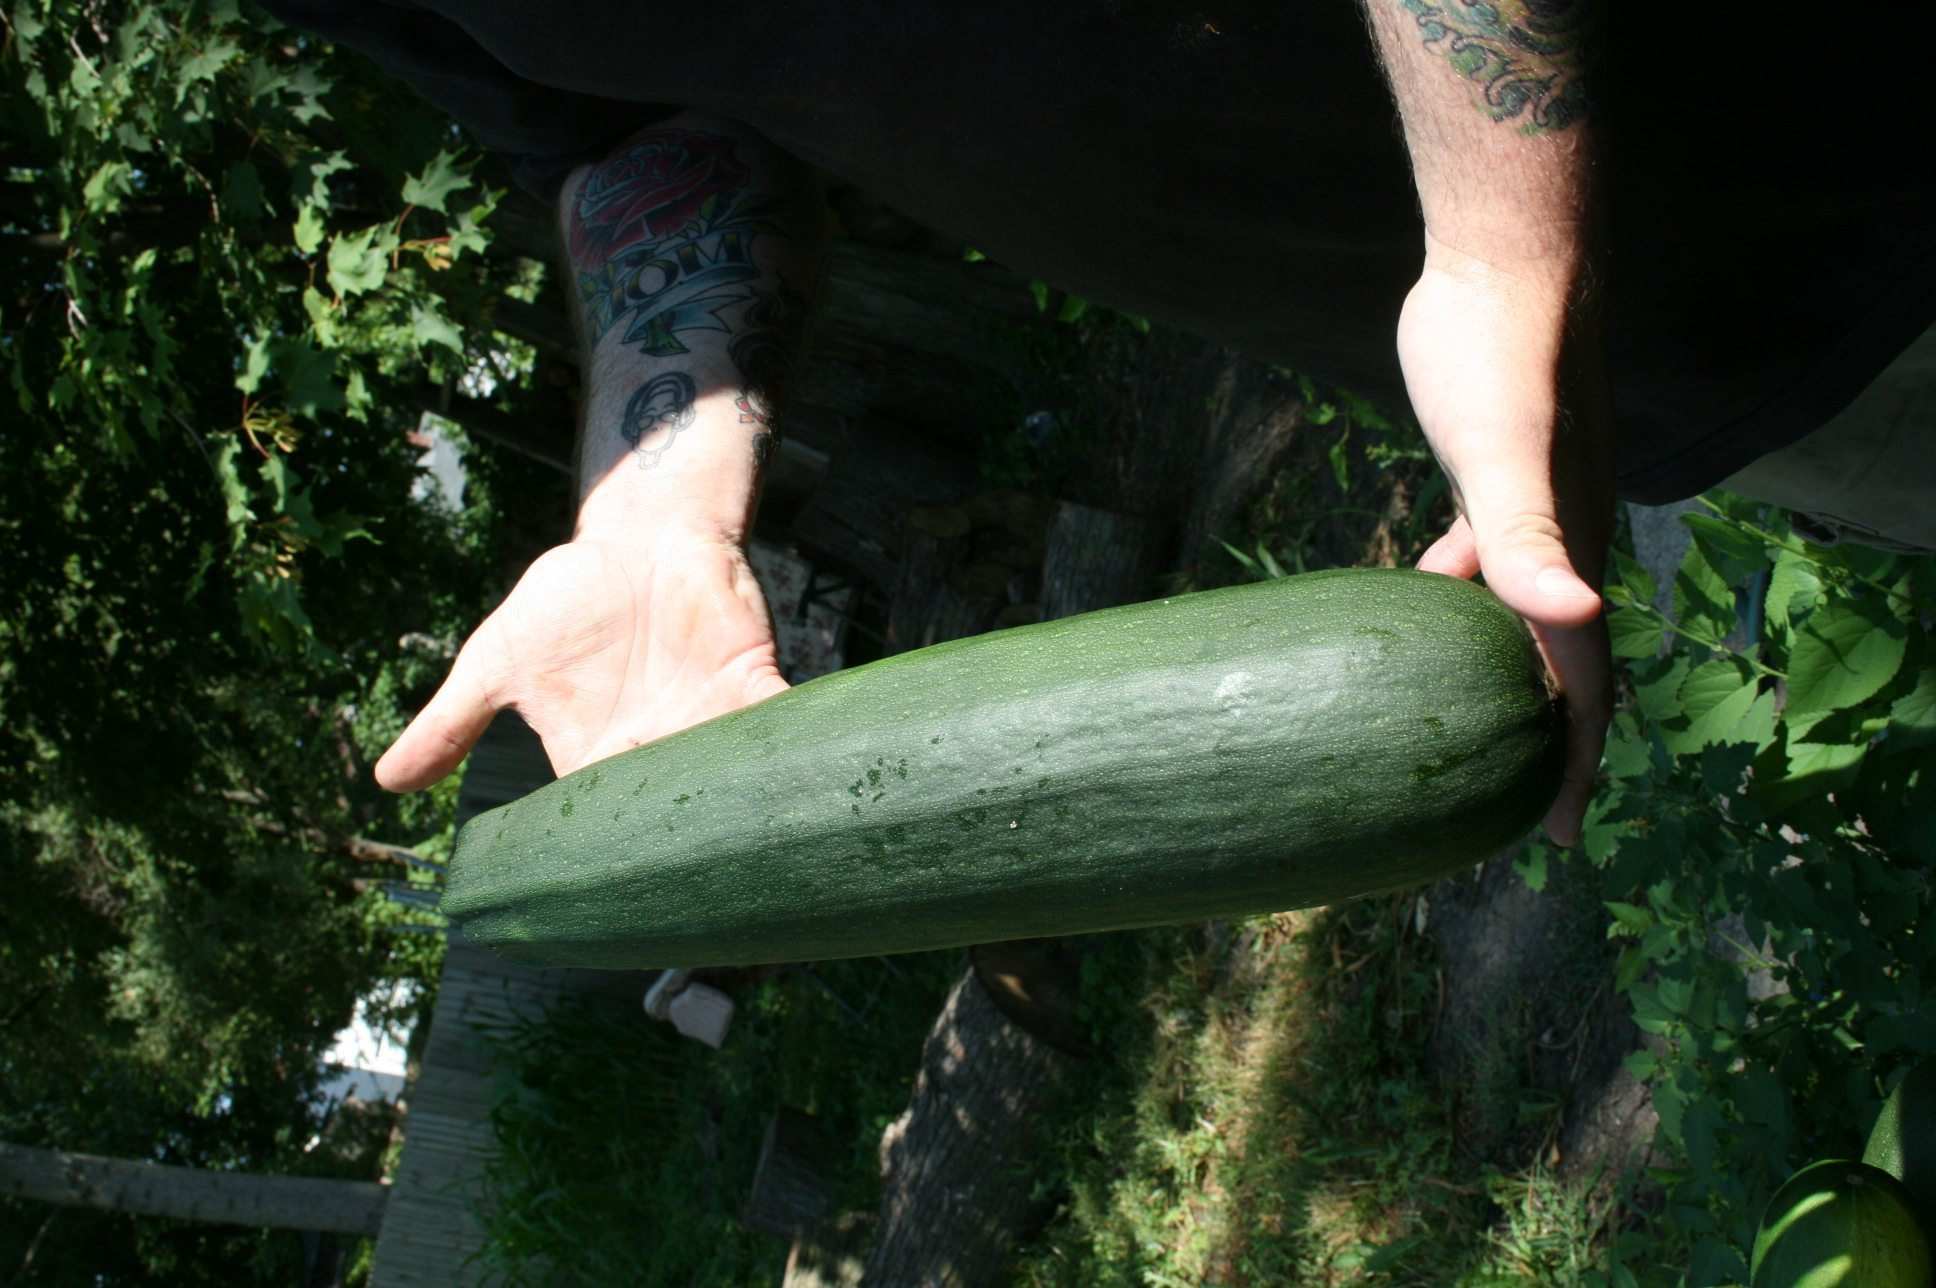 Picture of someone holding a large zucchini.